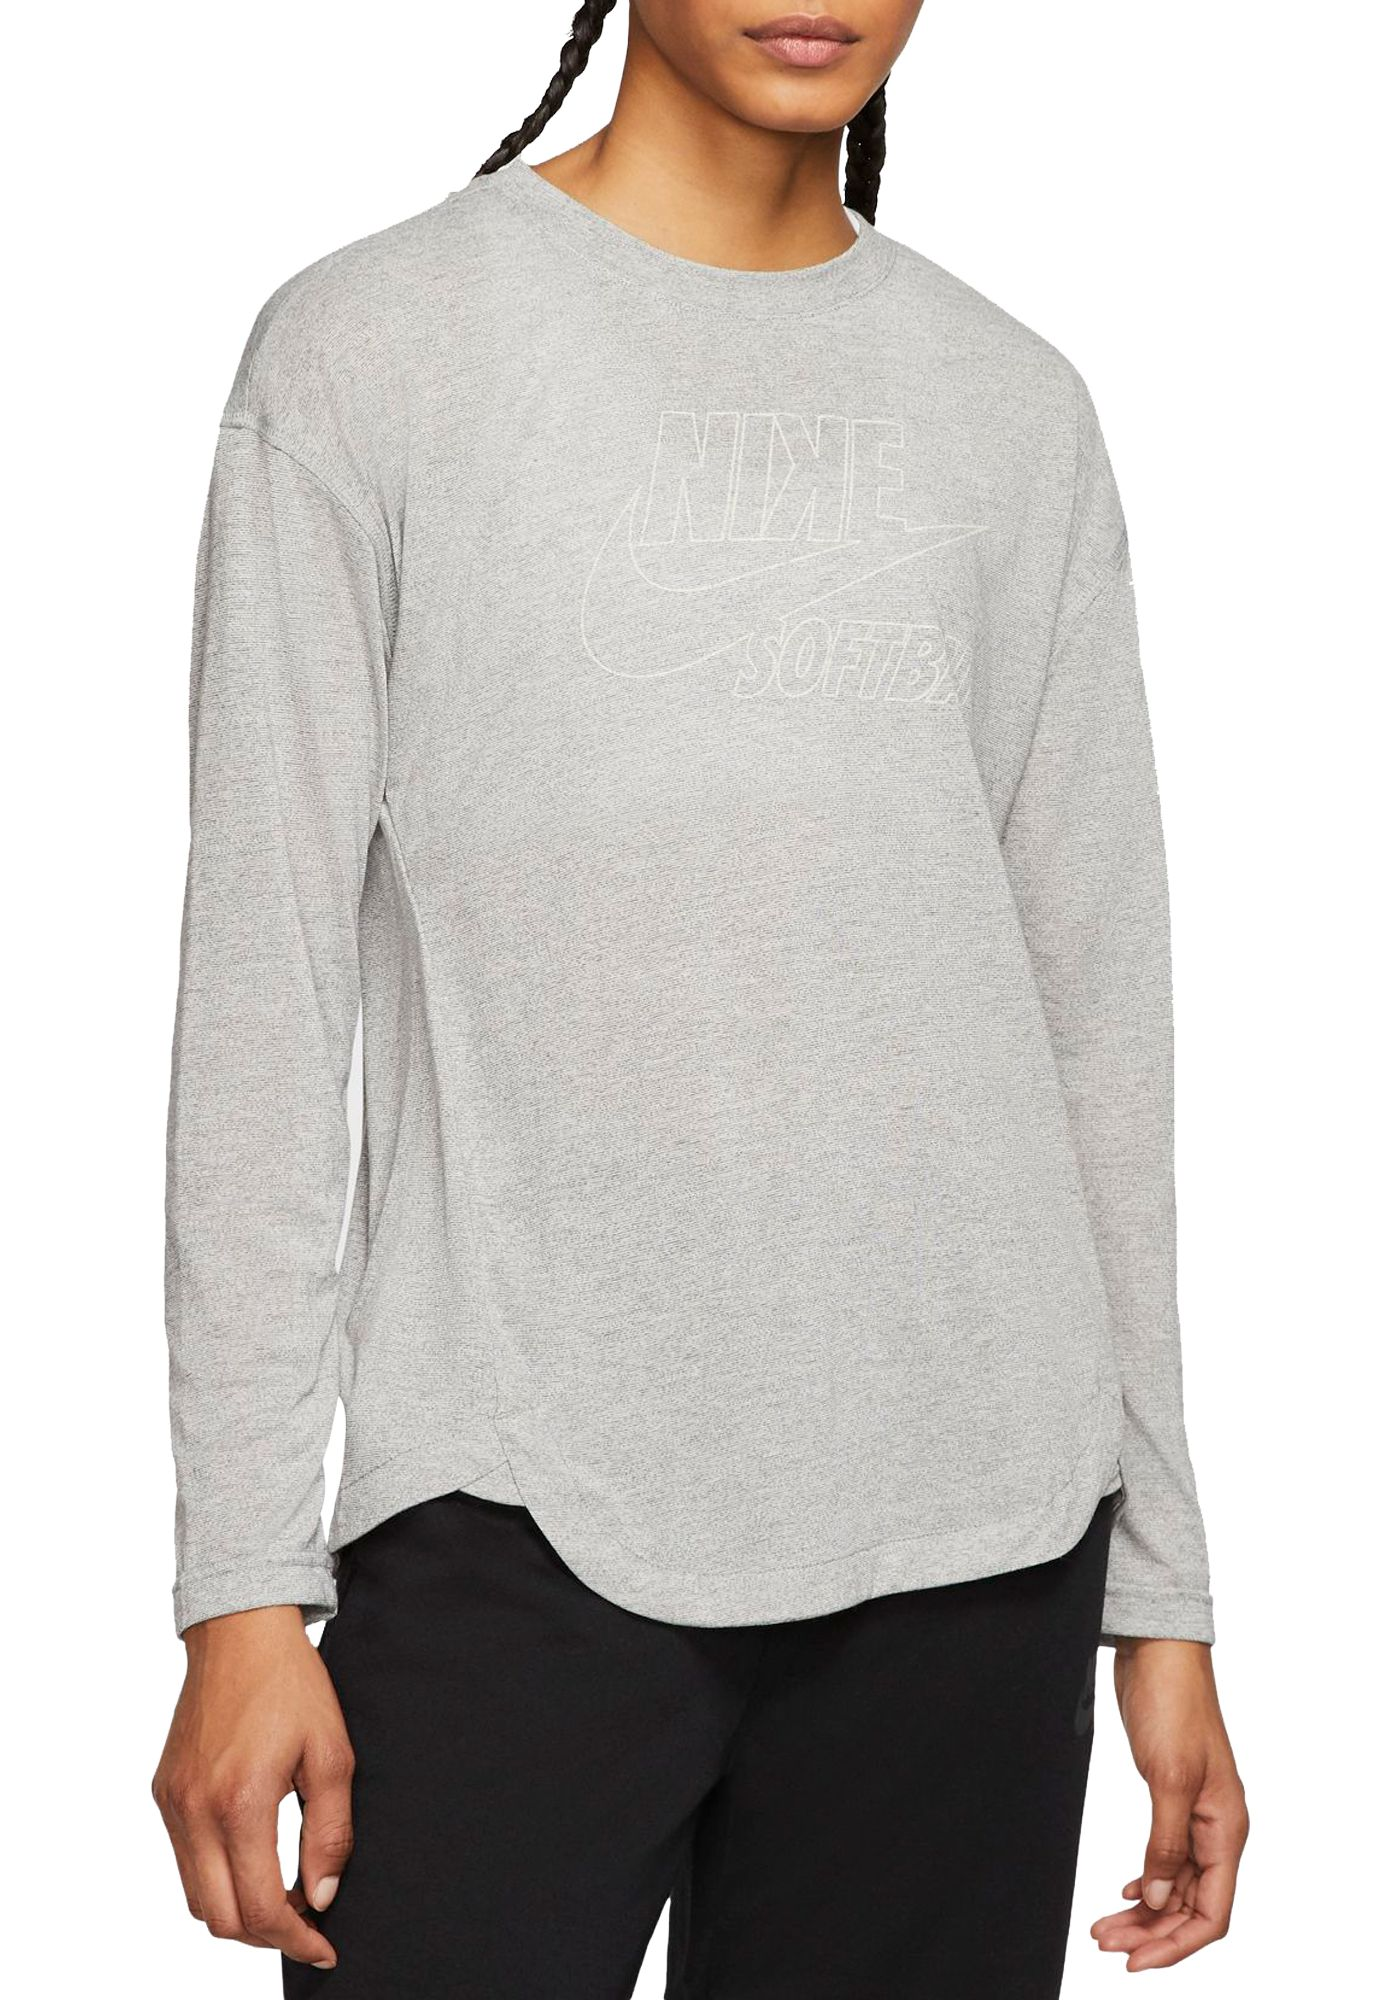 Nike Women's Breathe Long-Sleeve Softball Top